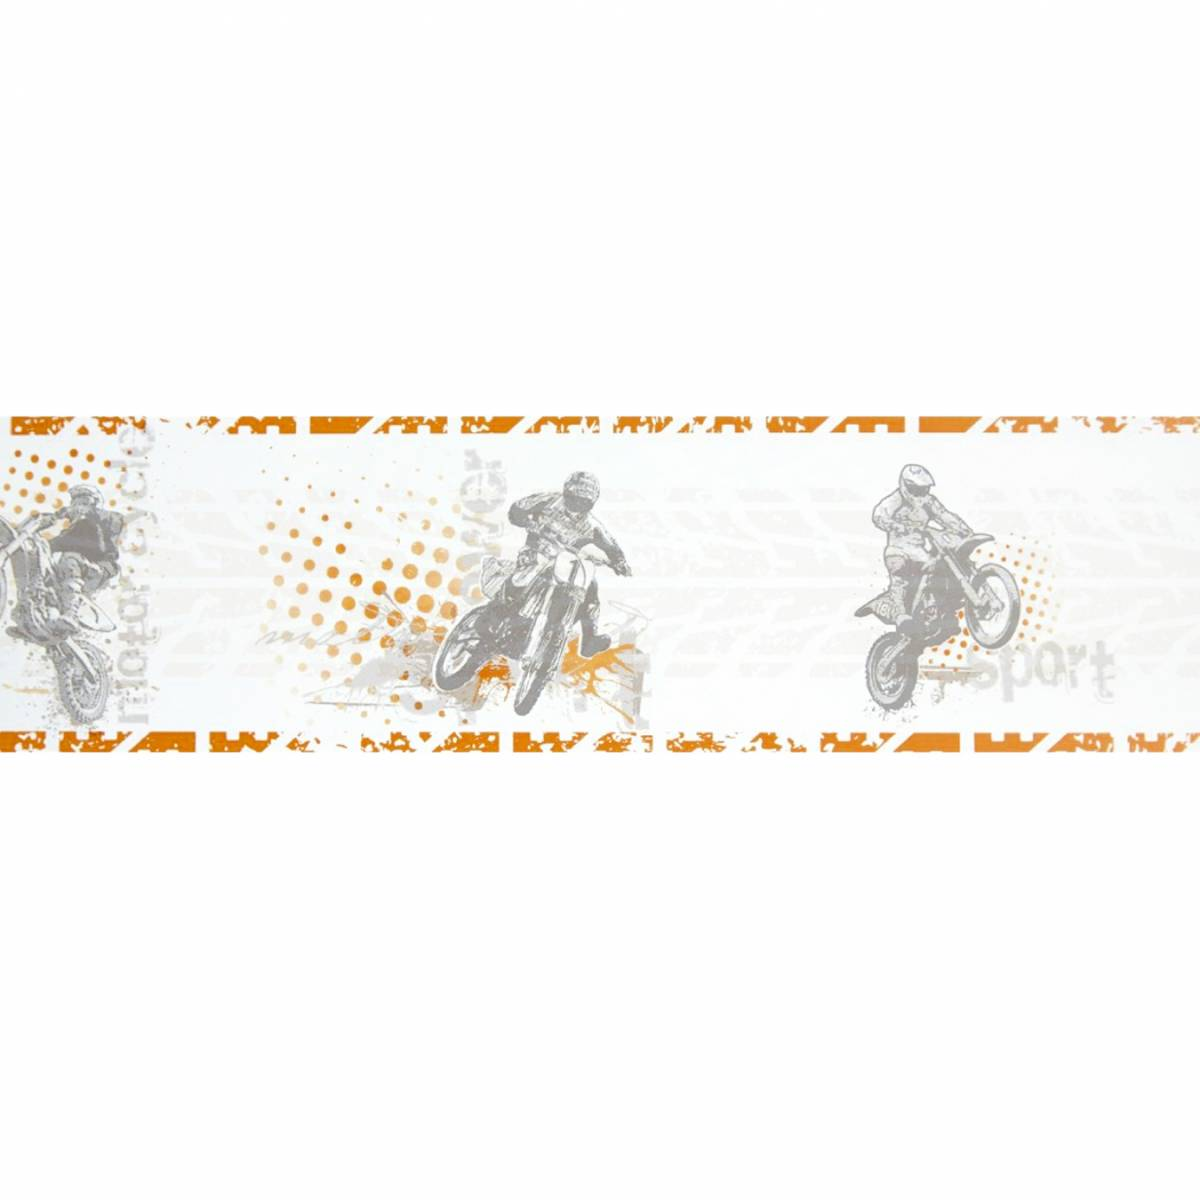 motocross wallpaper border orange 64823068 caselio